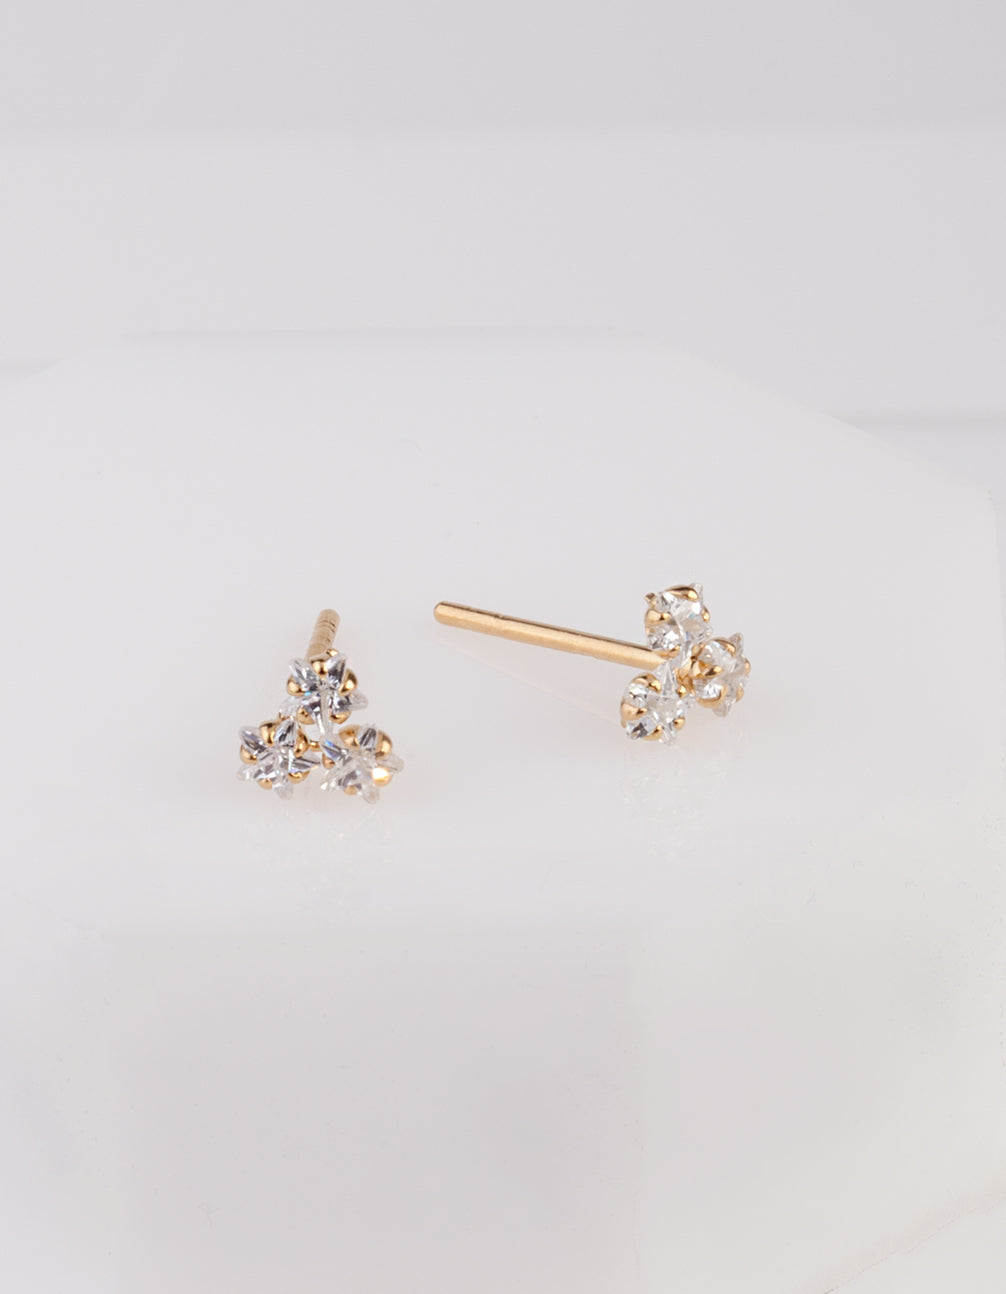 e36abe7bd51db Gold Plated Trio Cluster Earring Stud